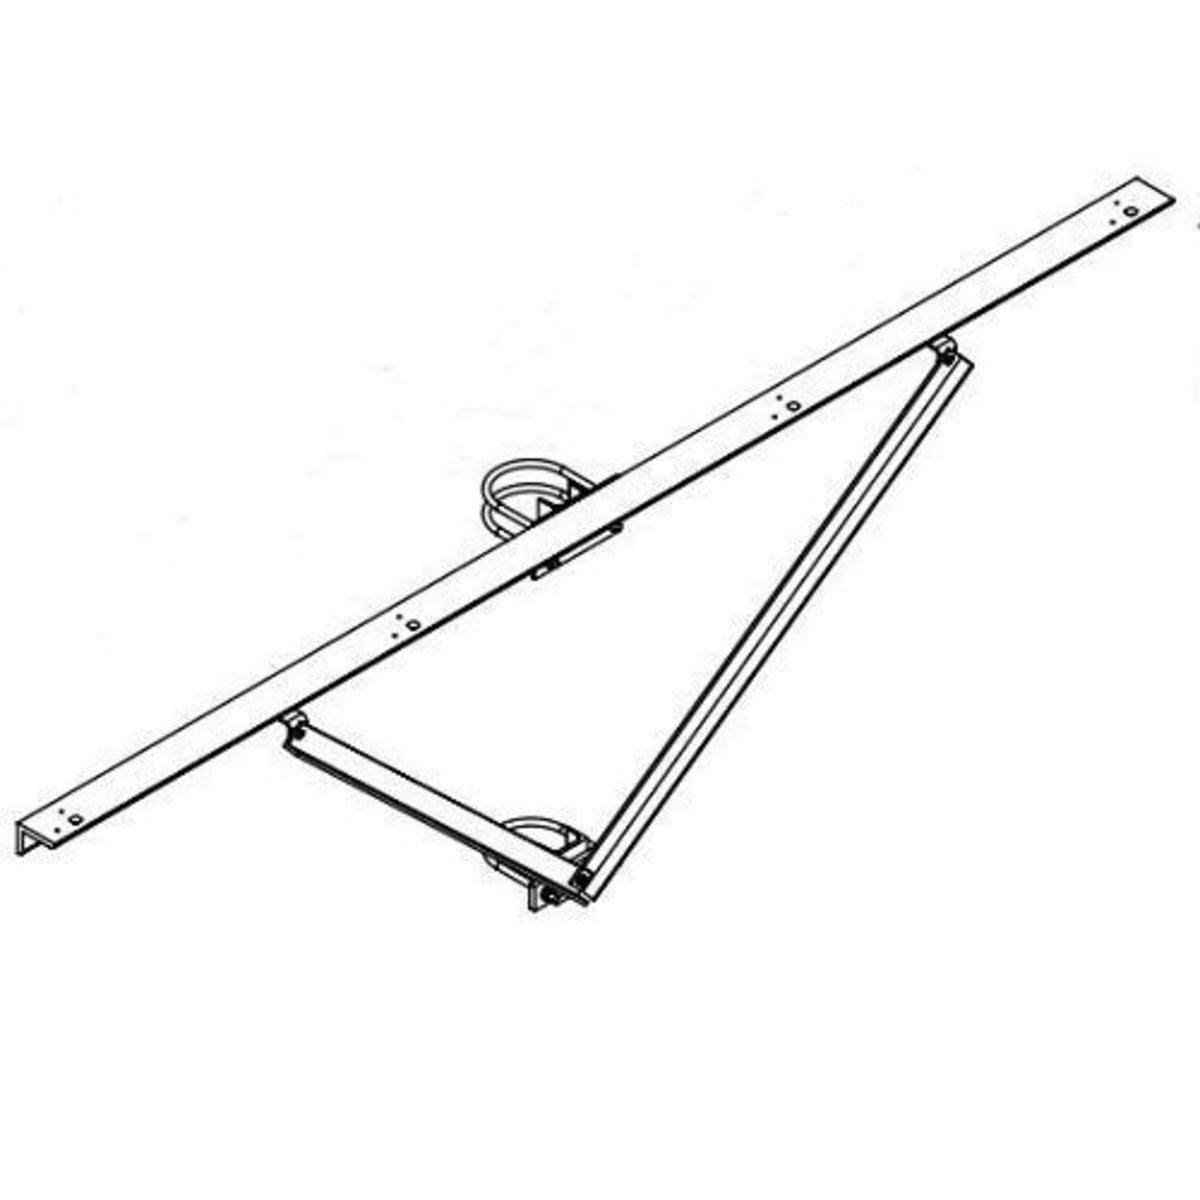 Hubbell Sportslighter Solutions,TCA-R4,MOUNT ACCESSORY, ROUND POLE, 4 FIXTURES